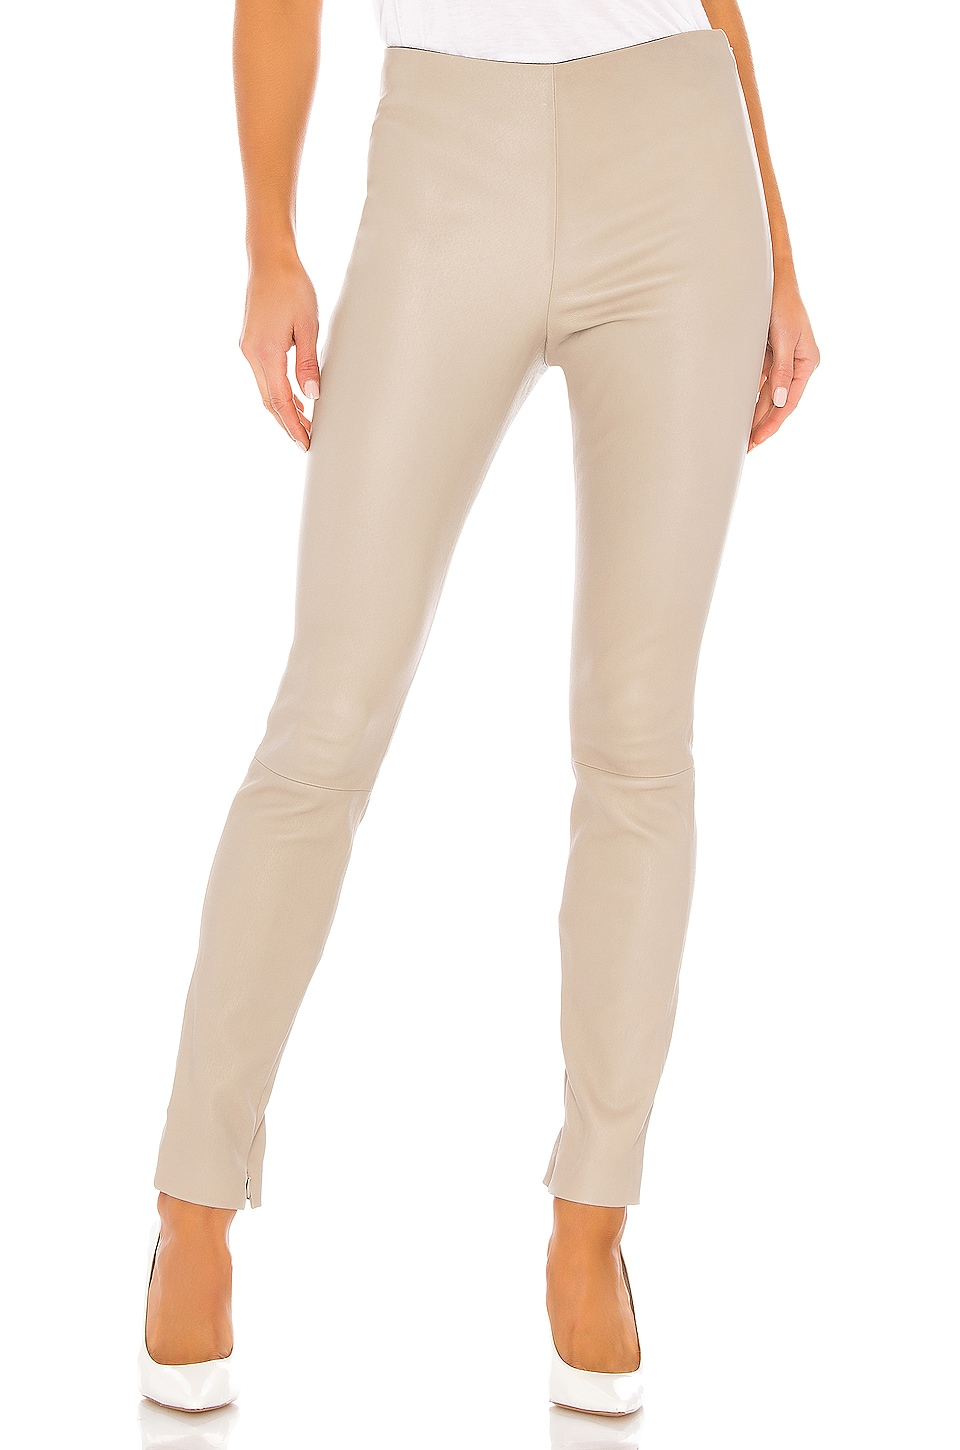 Theory Skinny Leather Legging in Light Grey Taupe